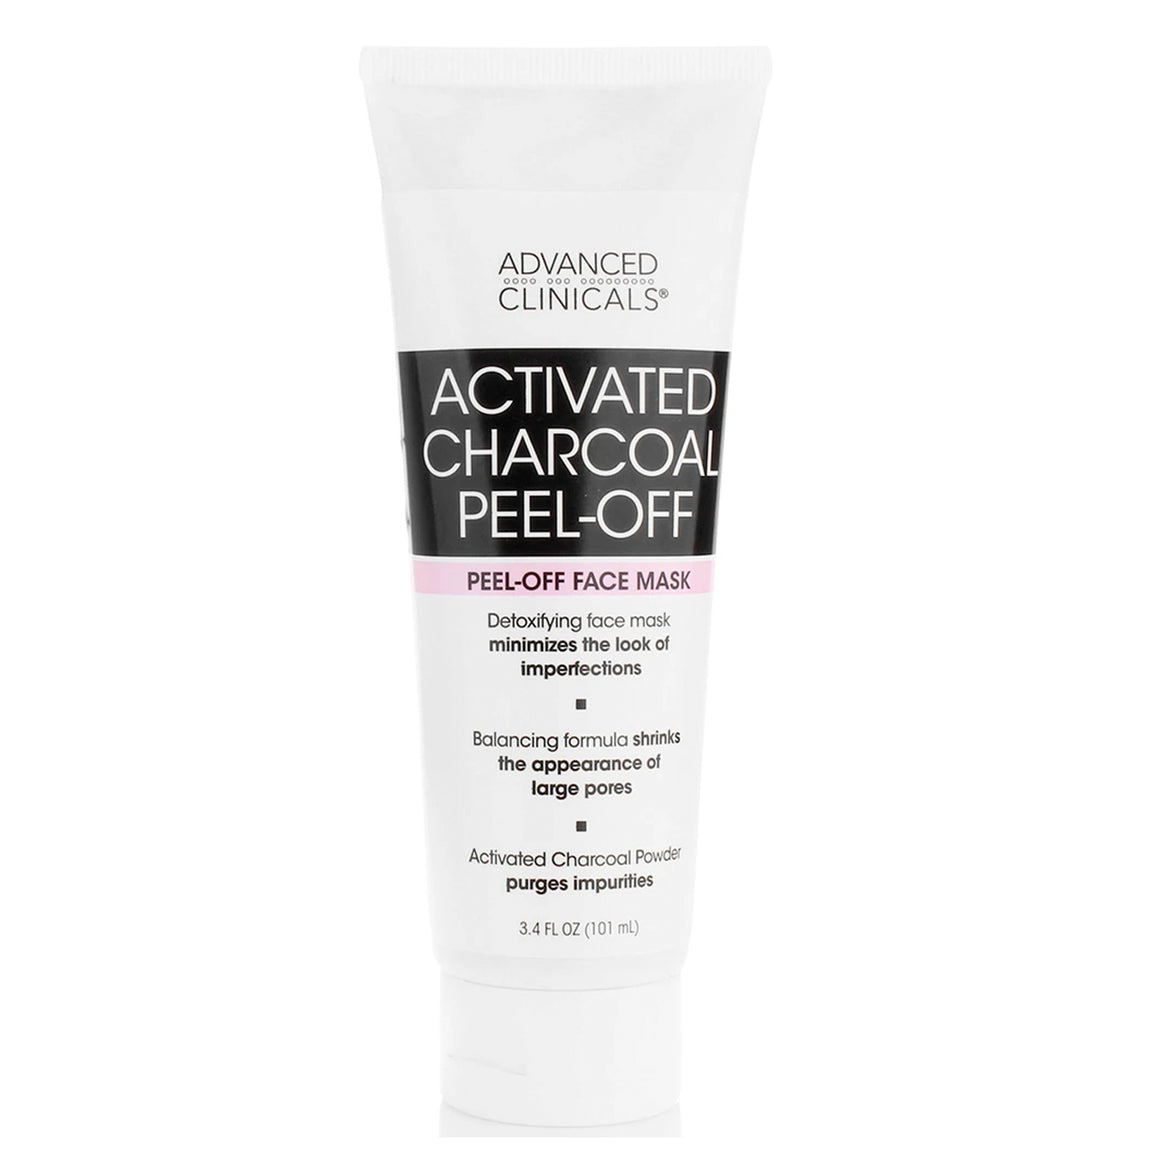 3.4 oz, activated charcoal peel off mask, minimizes imperfections